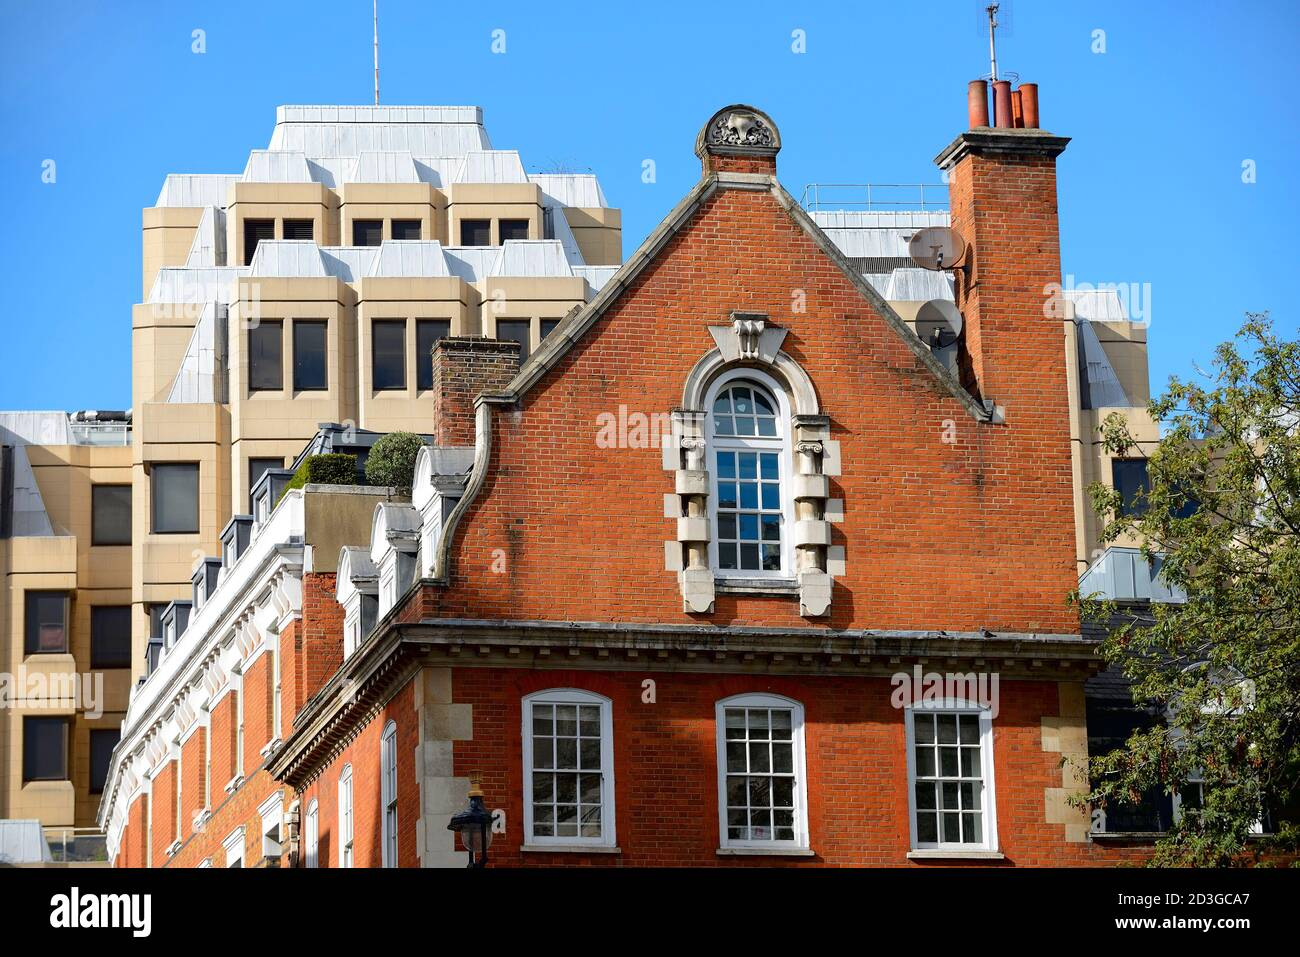 London, England, UK. Contrasting architectural styles: old and new buildings on Bow Street / Long Acre. (90 Long Acre behind) Stock Photo